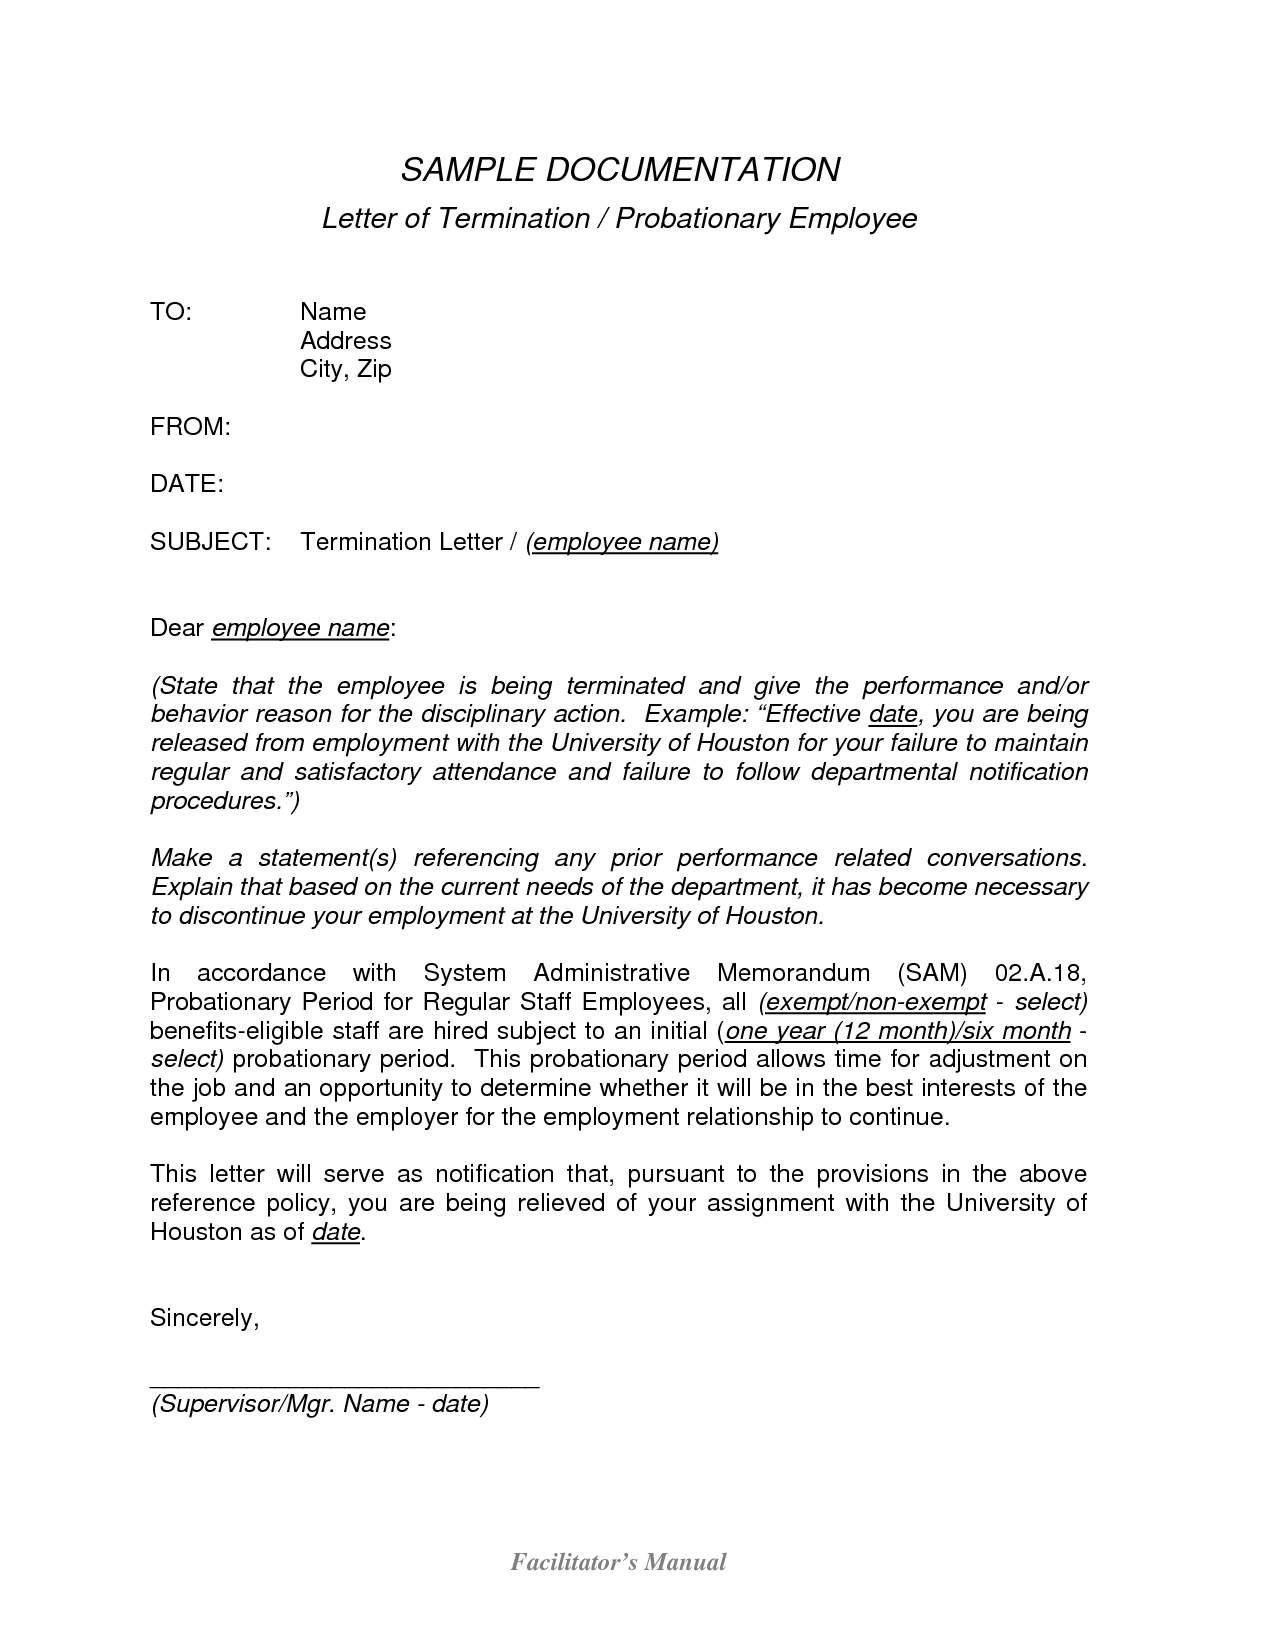 Letter of contract cancellation etamemibawa letter of contract cancellation termination letter sample contract cancellation web invoice offer letter of contract cancellation sample job spiritdancerdesigns Image collections